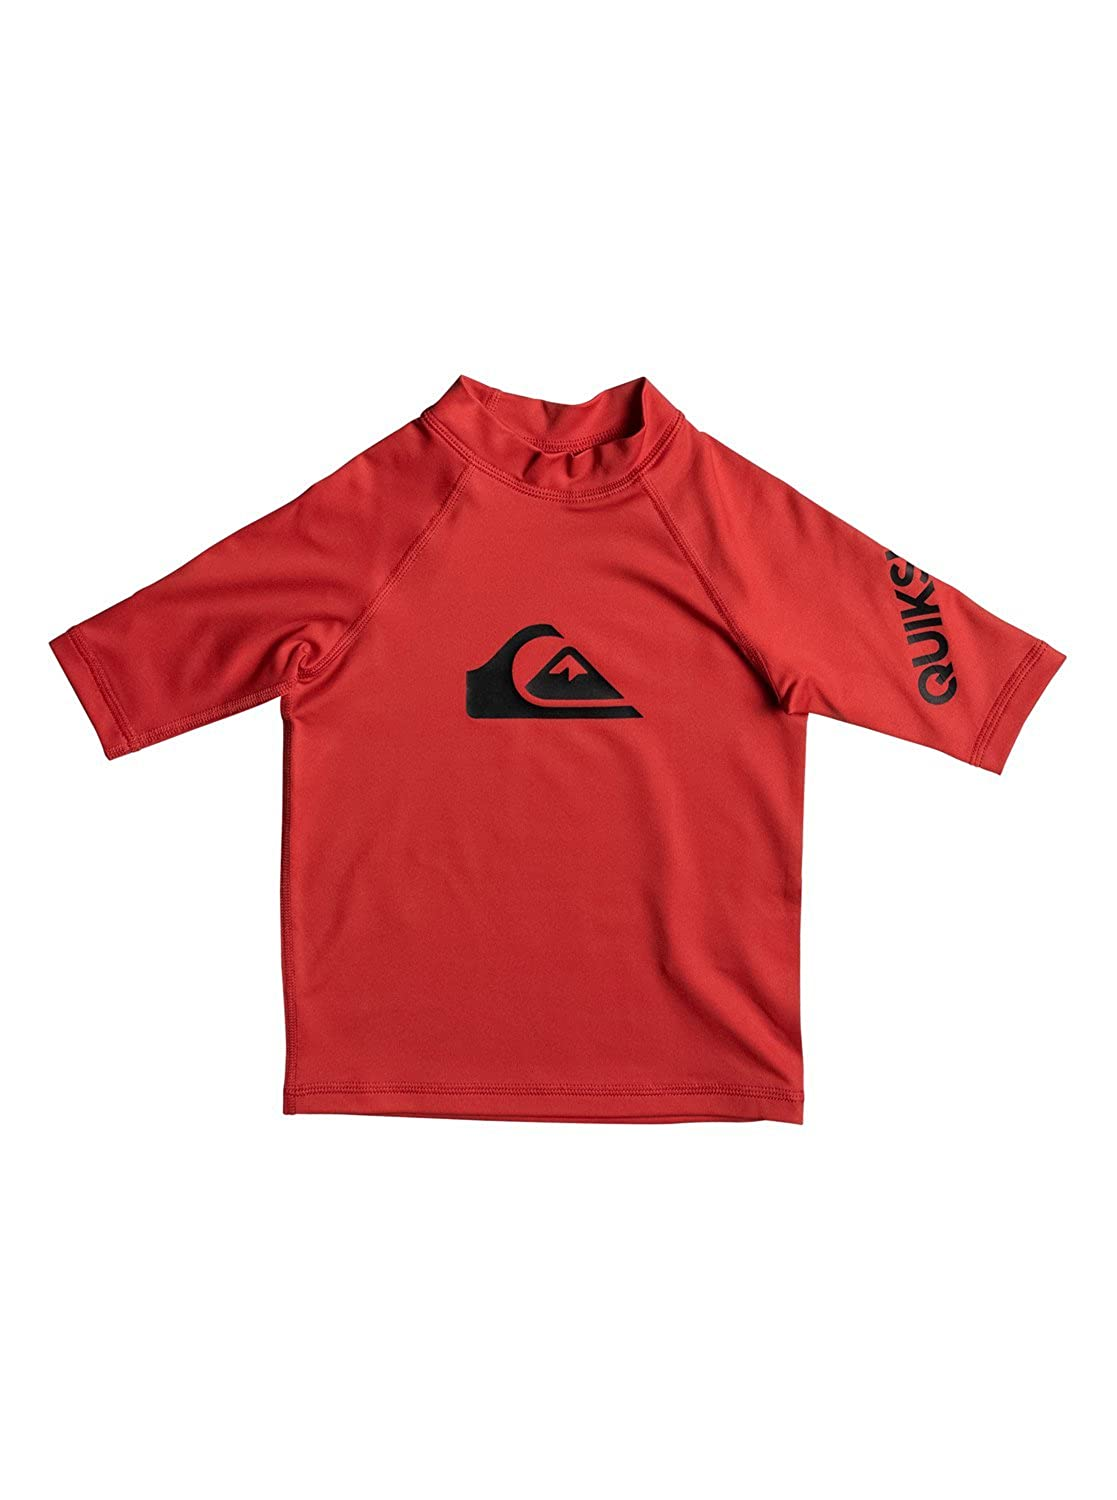 Quiksilver Boys All Time - Short Sleeve Upf 50 Rash Vest Short Sleeve Upf 50 Rashguard EQKWR03019